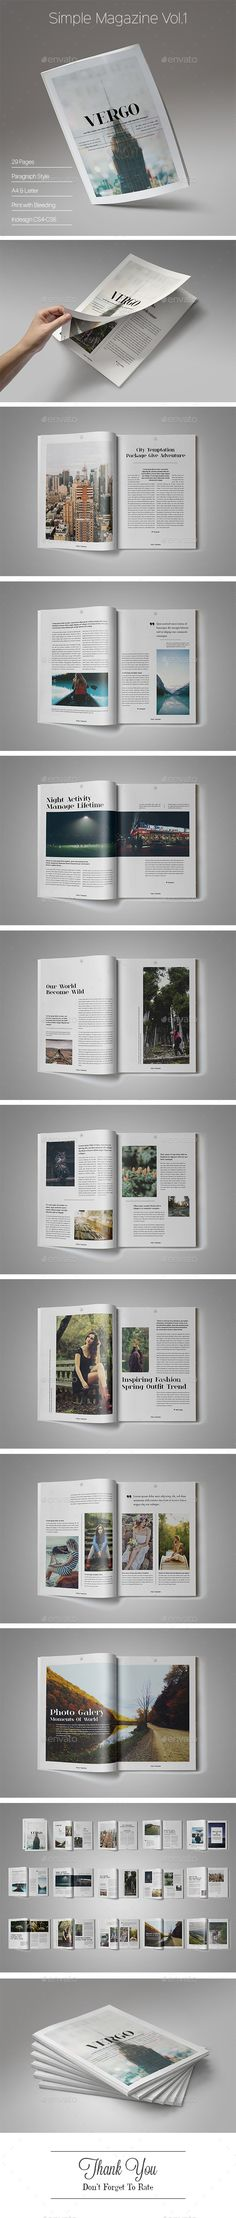 Simple Magazine Vol.1 — InDesign INDD #product #editorial • Available here → https://graphicriver.net/item/simple-magazine-vol1/15592358?ref=pxcr